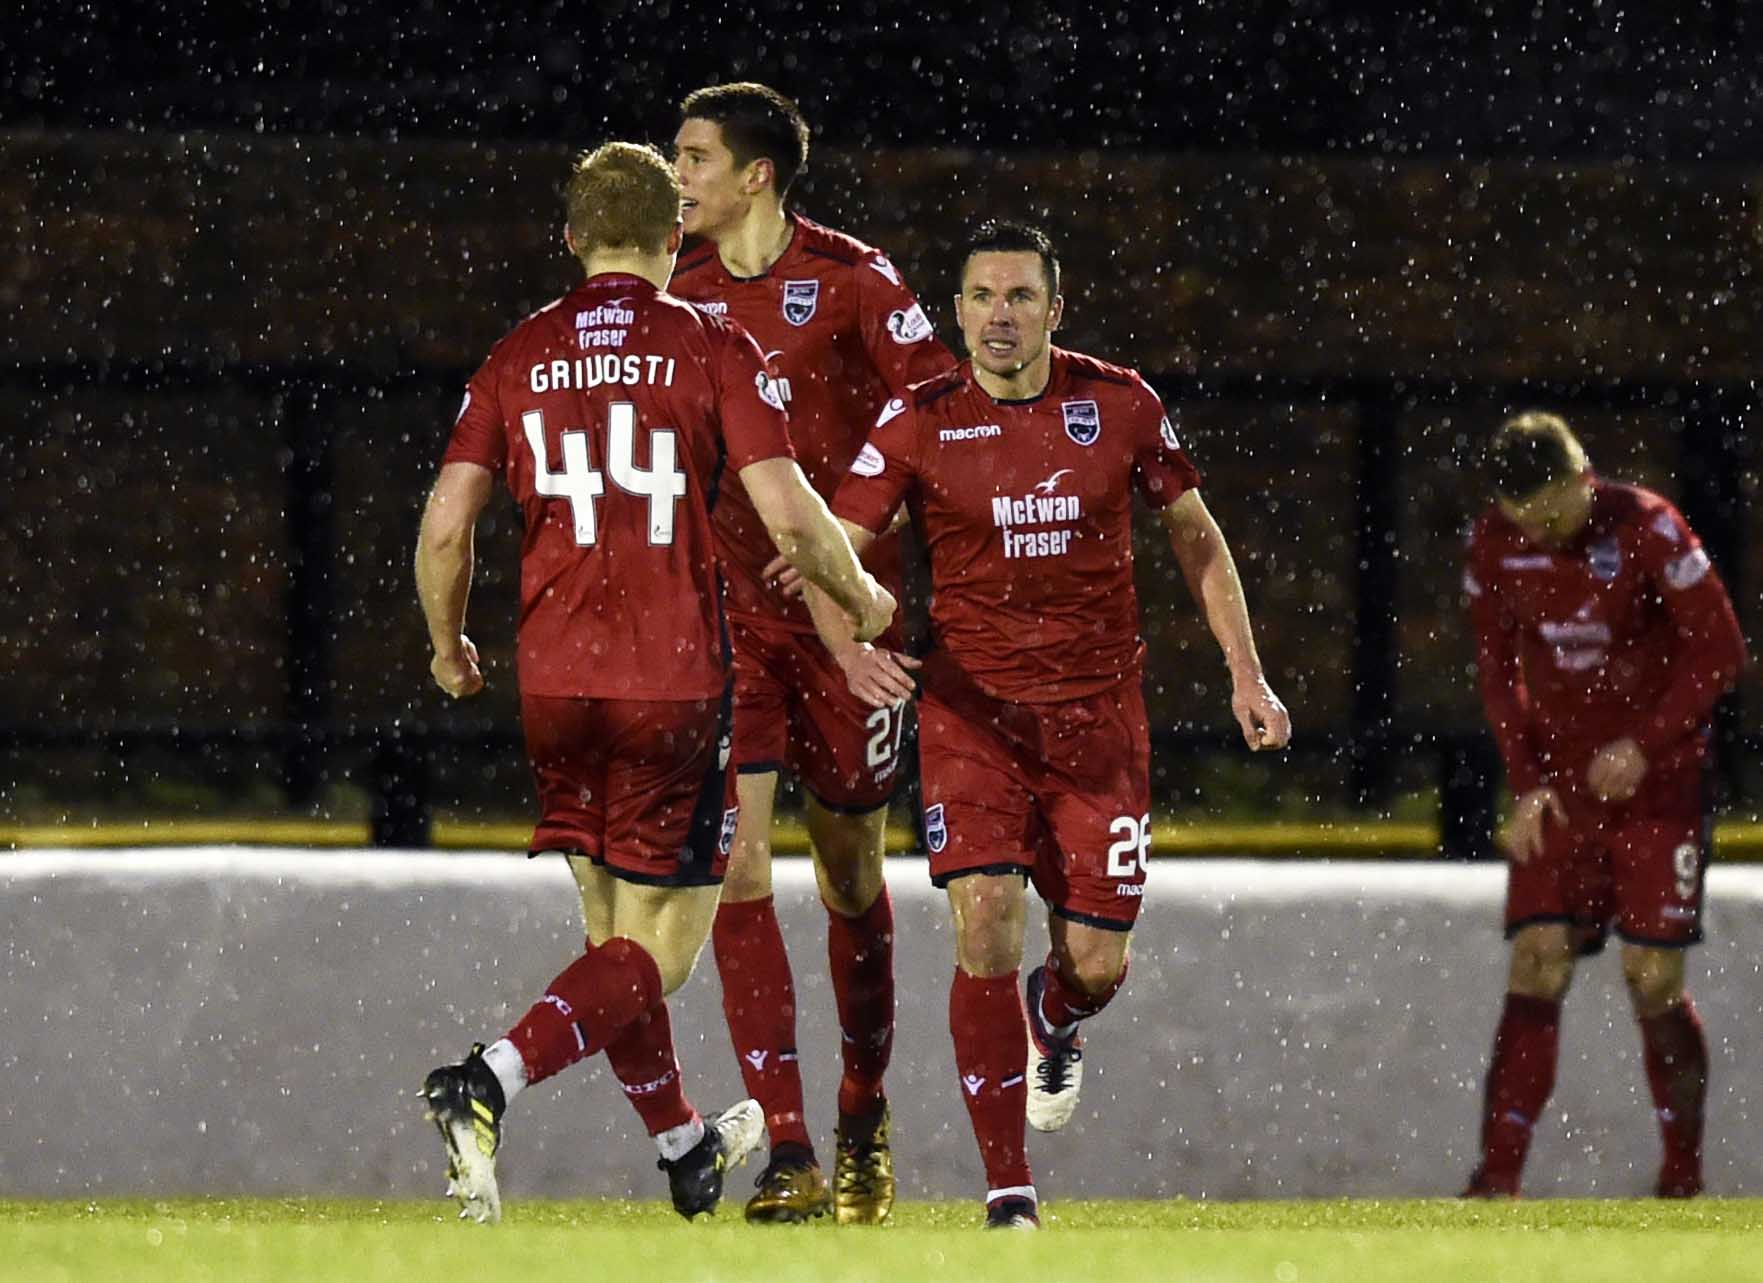 15/12/18 LADBROKES CHAMPIONSHIP AYR UTD v ROSS COUNTY SOMERSET PARK - AYR Ross County's Don Cowie(R) celebrates his equaliser